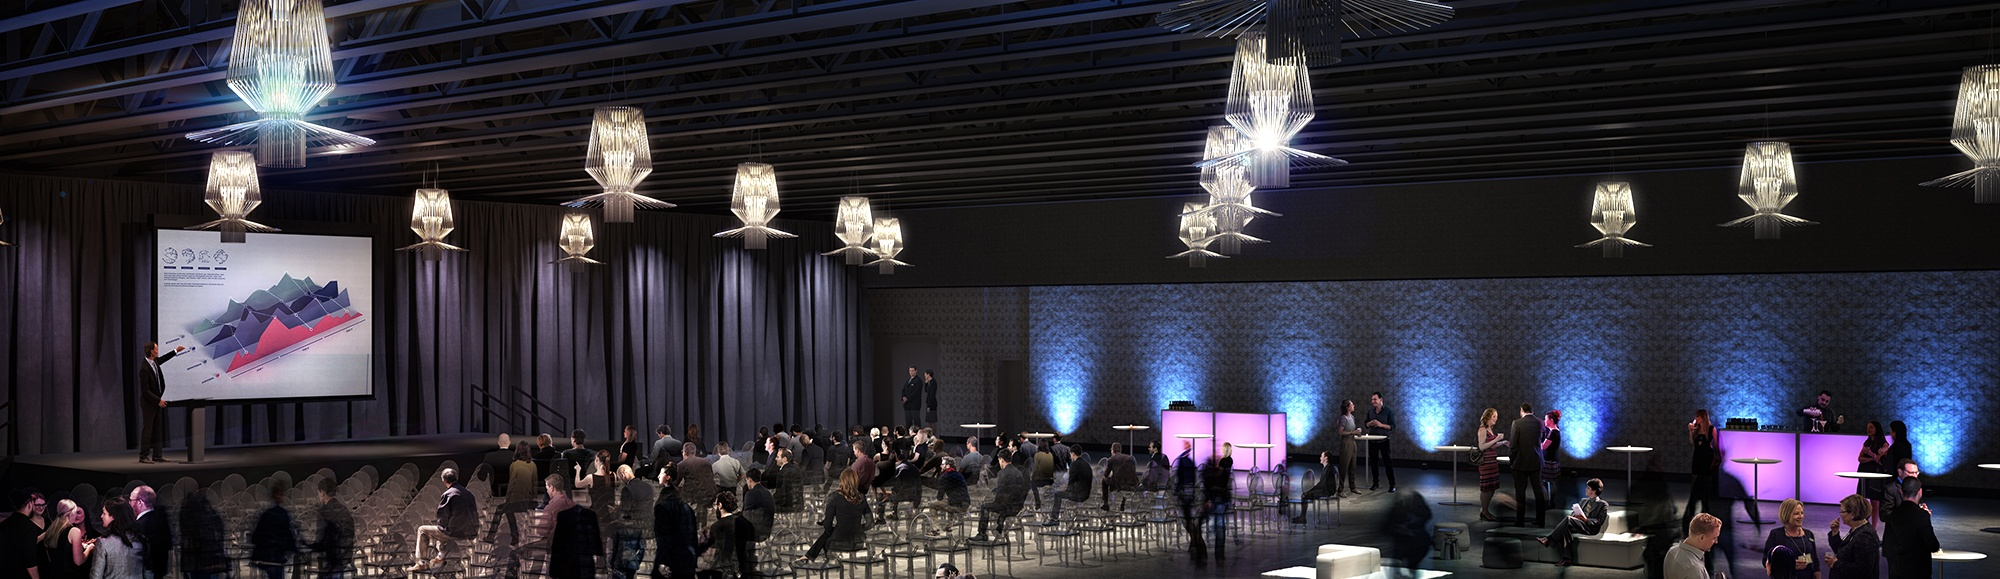 Casino Conference & Event Space